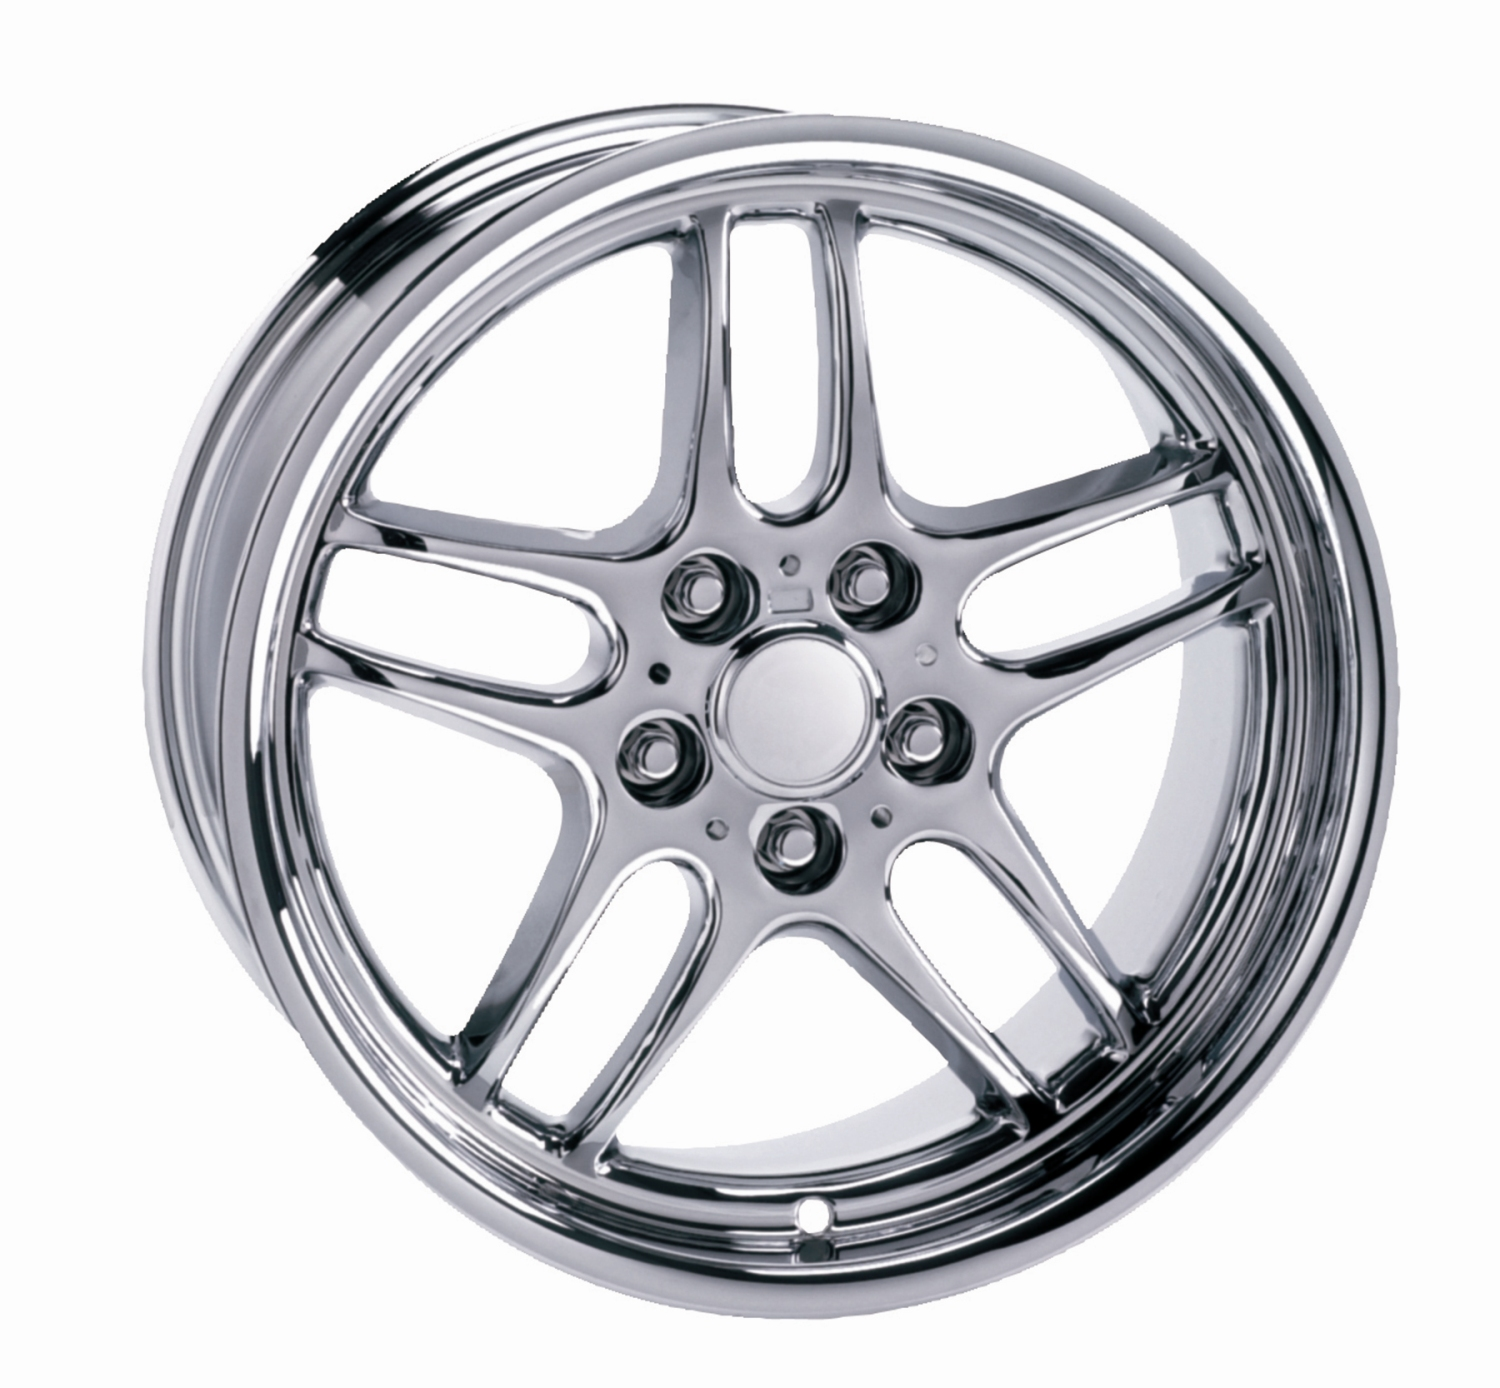 Bmw 3 Series 1992-2010 18x8 5x120 +35 - Parallel Spoke Wheel - Chrome With Cap